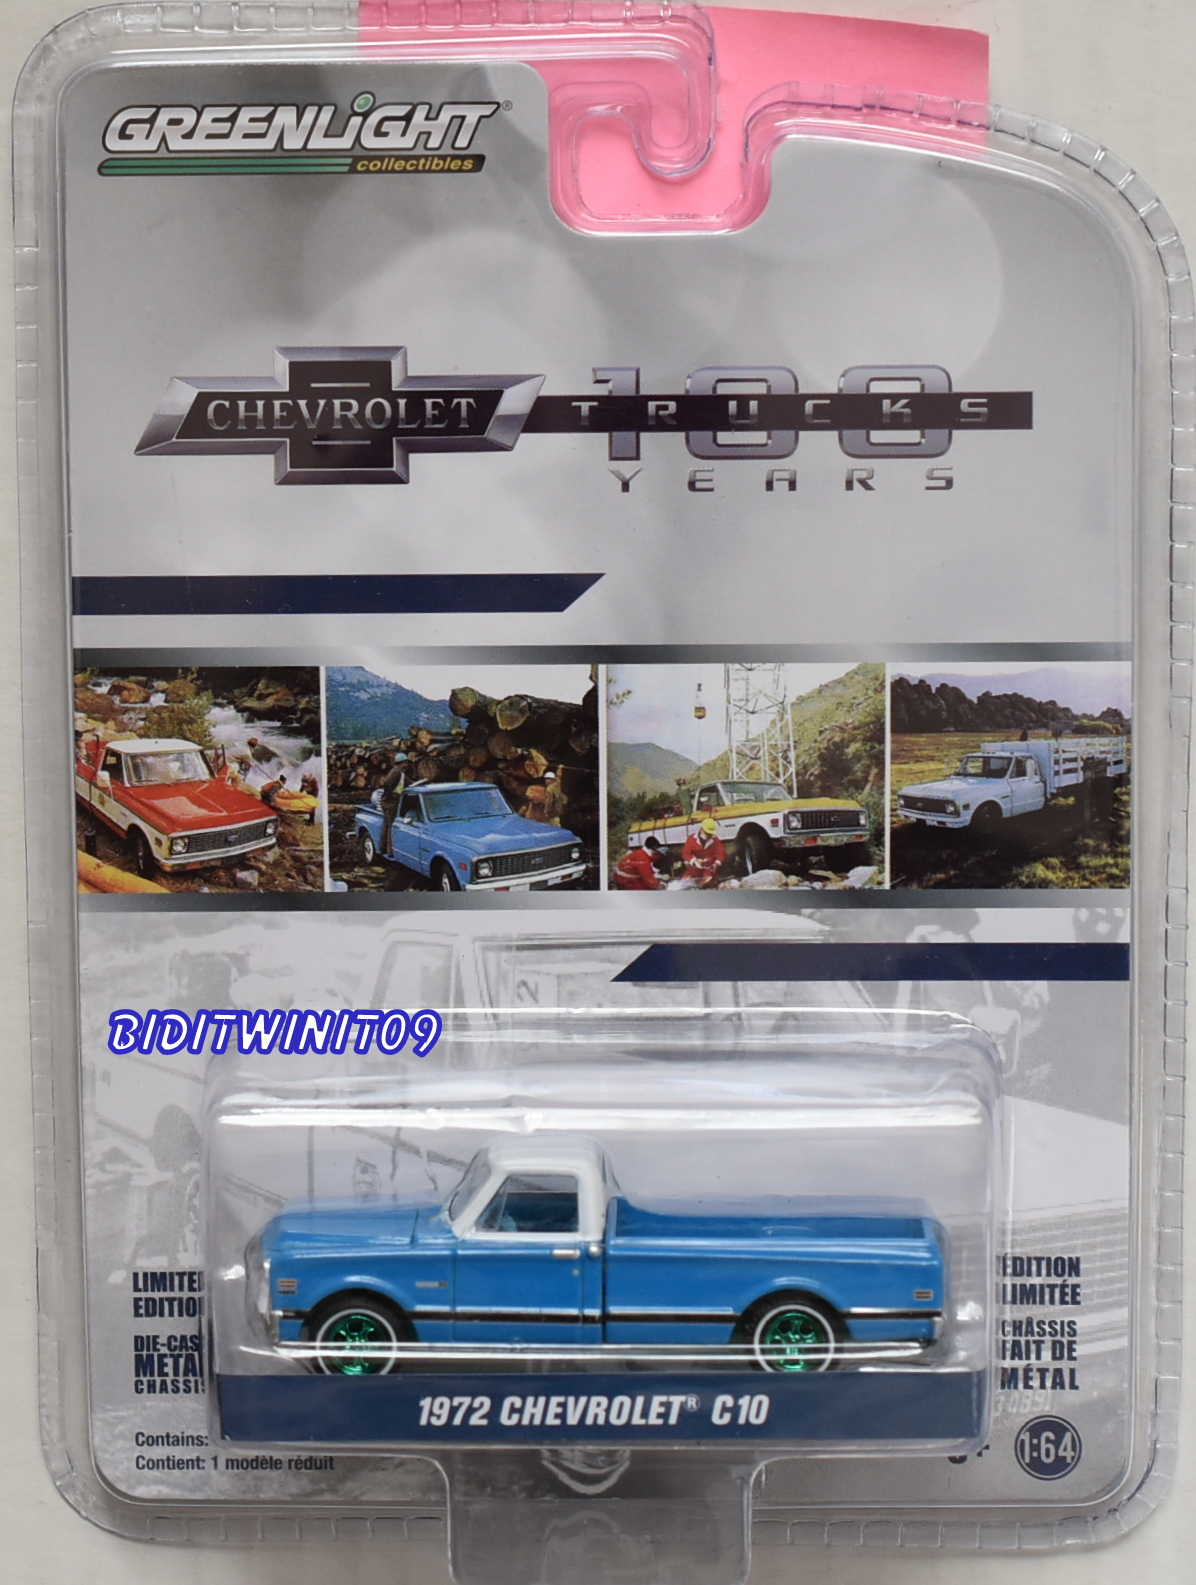 GREENLIGHT 100 YEARS TRUCK 1972 CHEVROLET C10 GREEN MACHINE E+